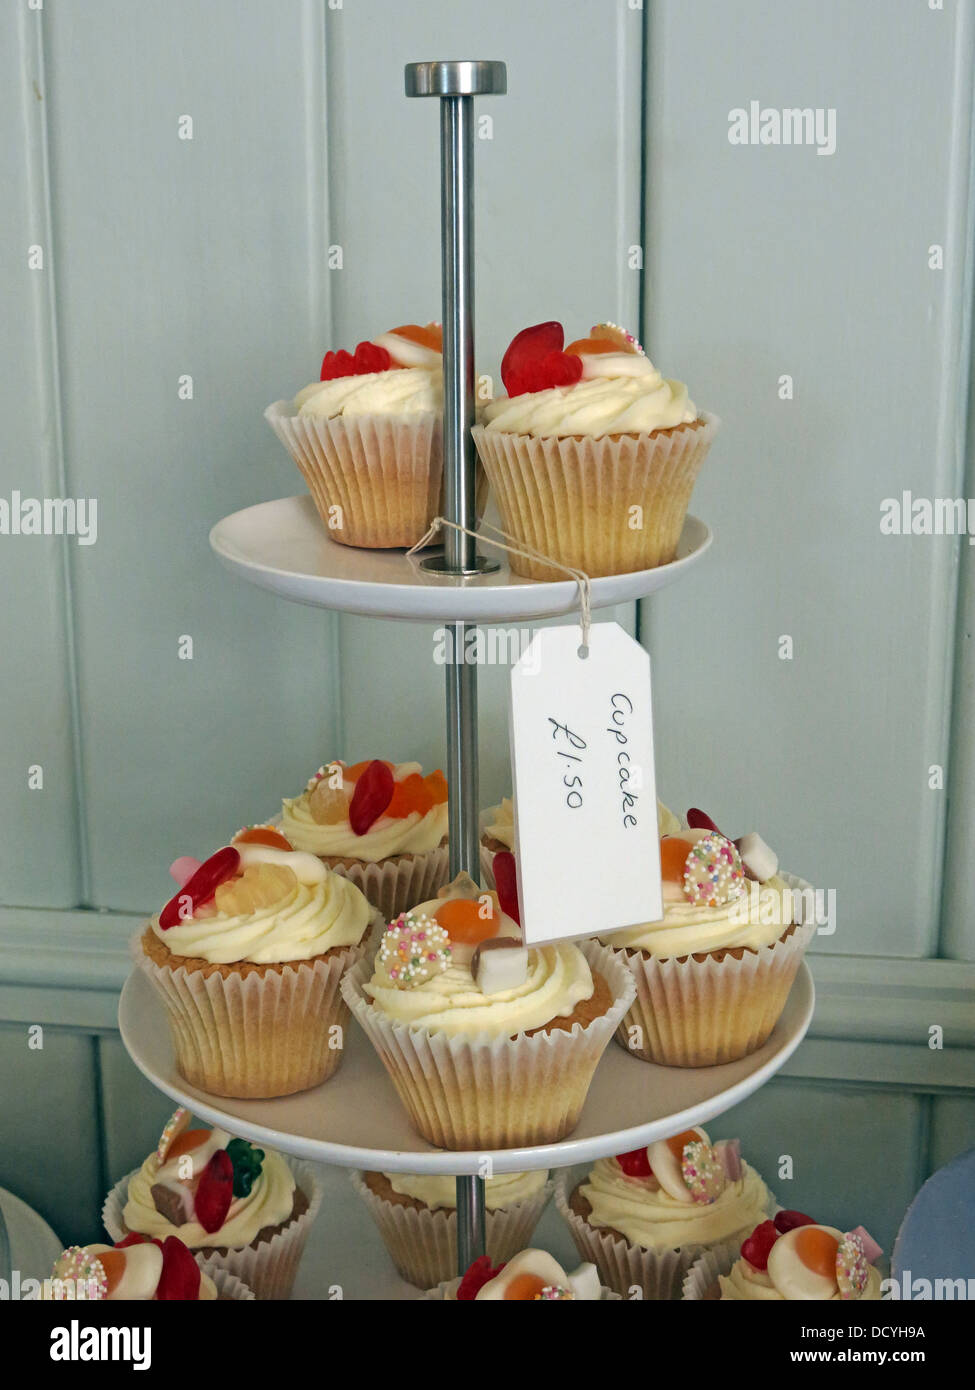 Some classic cupcakes on a stand , for sale £1.50 each - Stock Image